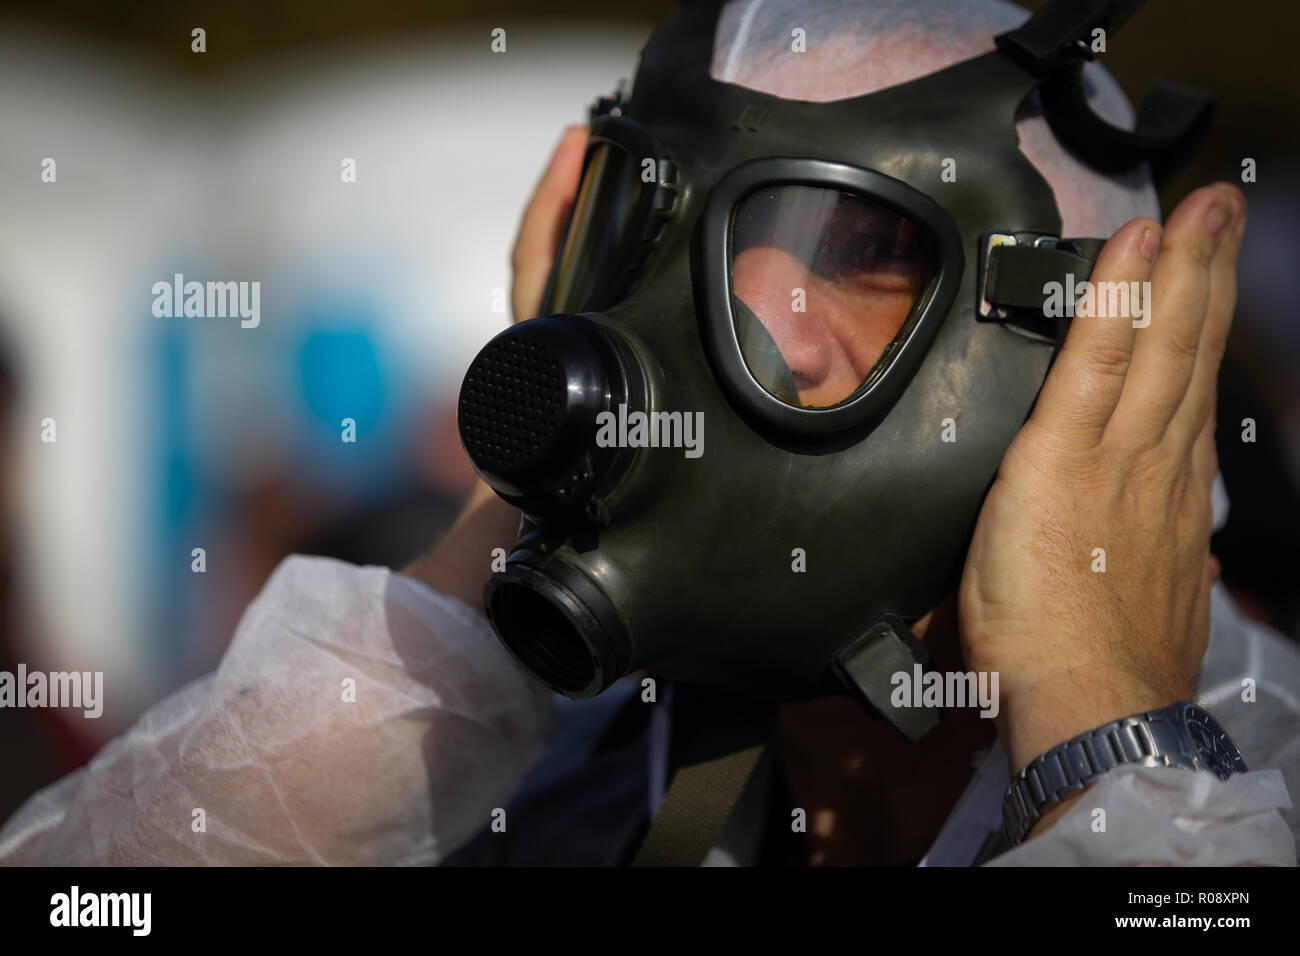 Vet doctor wearing a protective suit puts on a gas mask - Stock Image